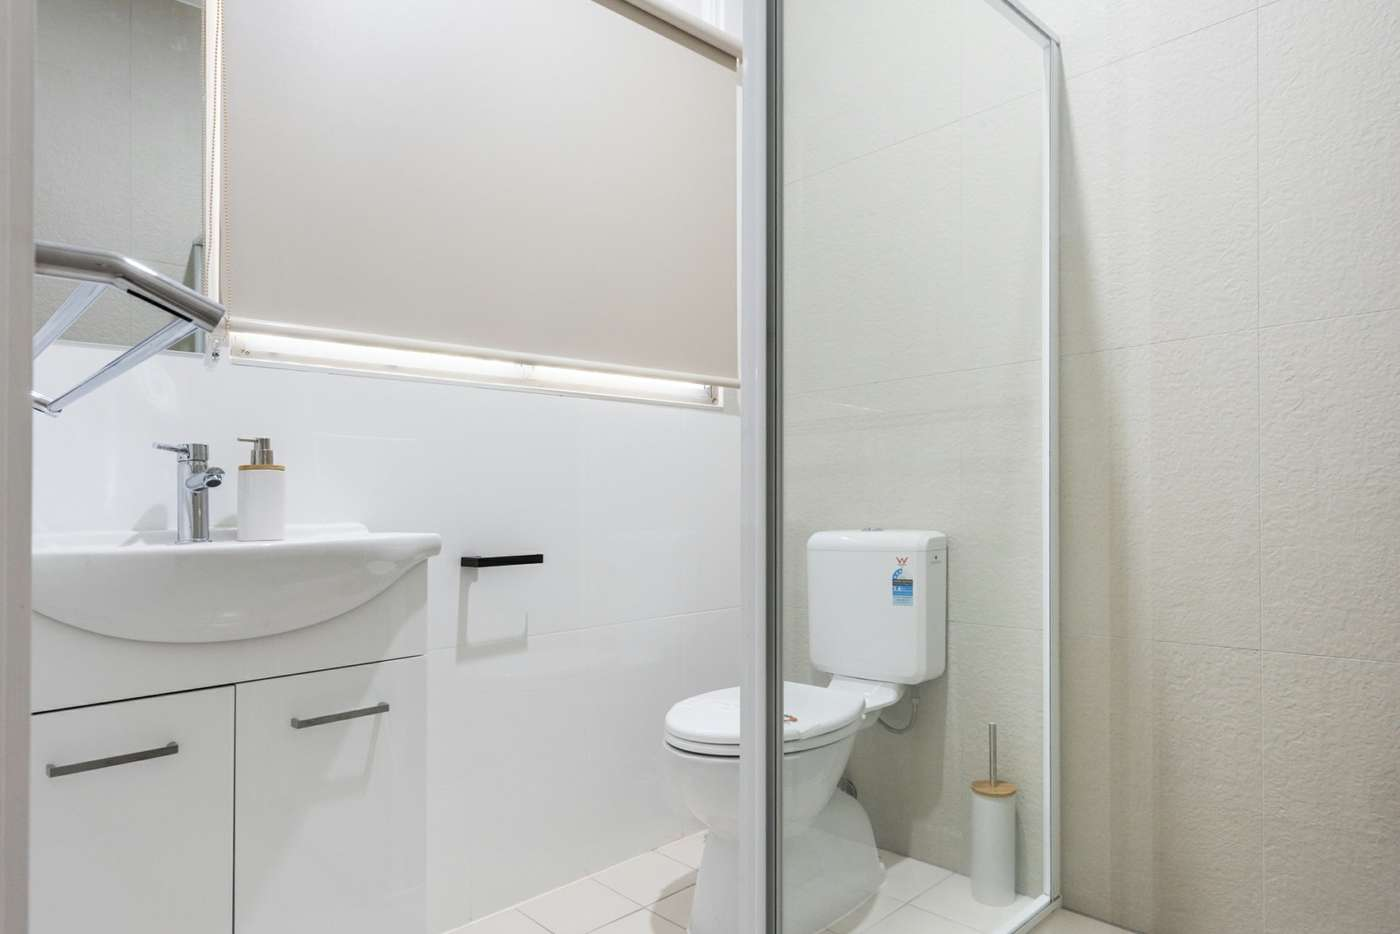 Seventh view of Homely studio listing, 1/16 Loxton Avenue, Iluka NSW 2466